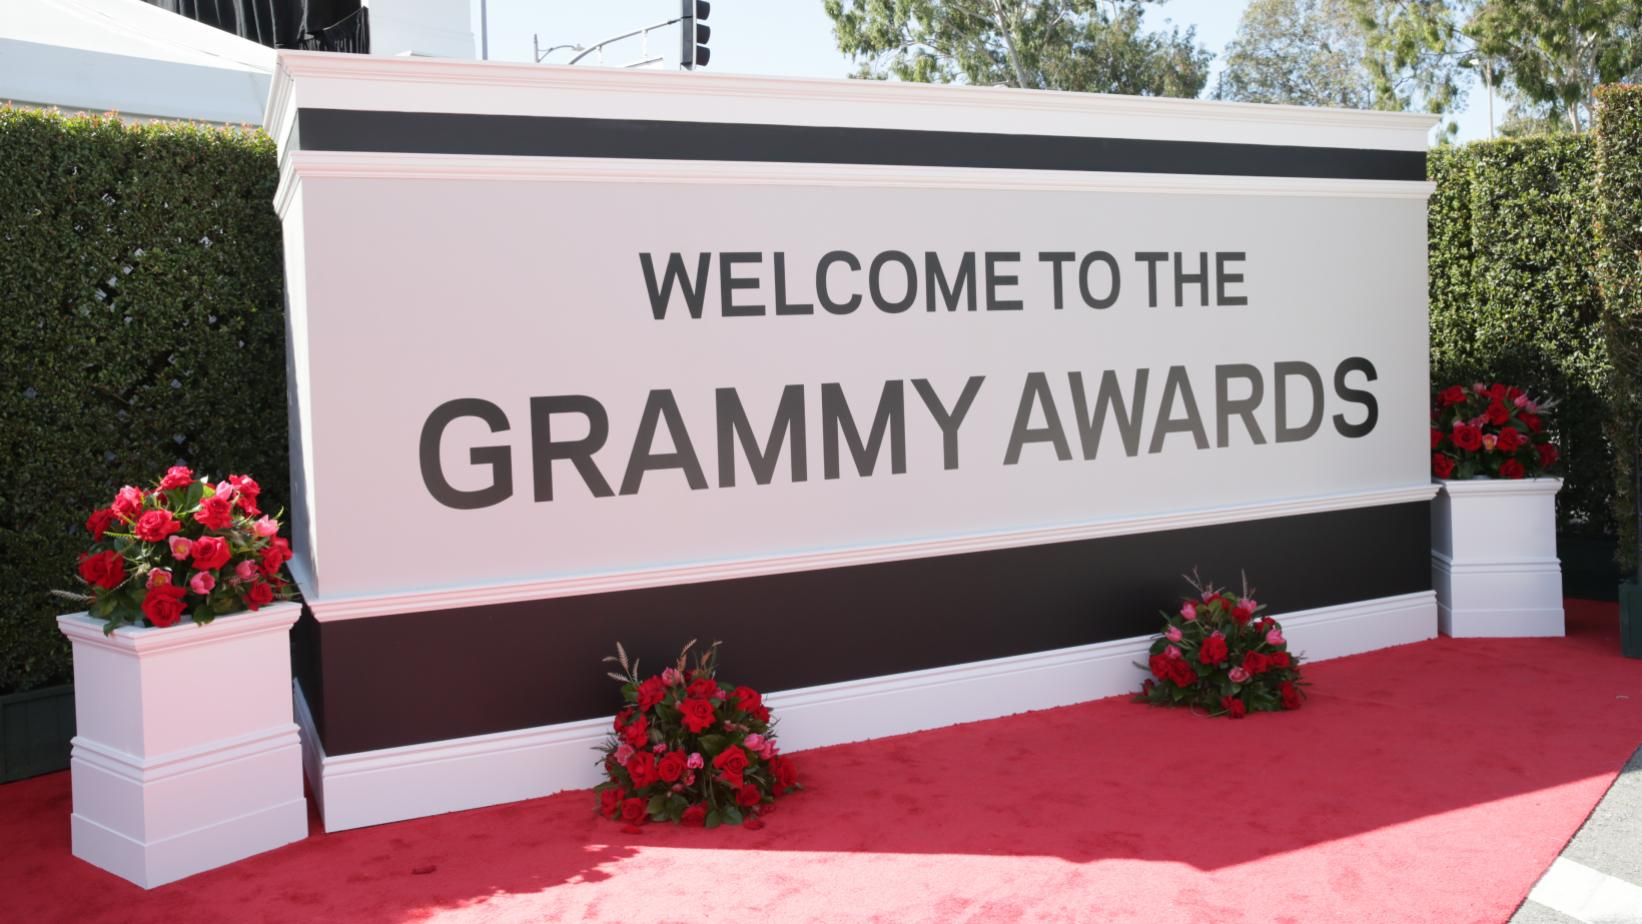 Welcome to the GRAMMY Awards